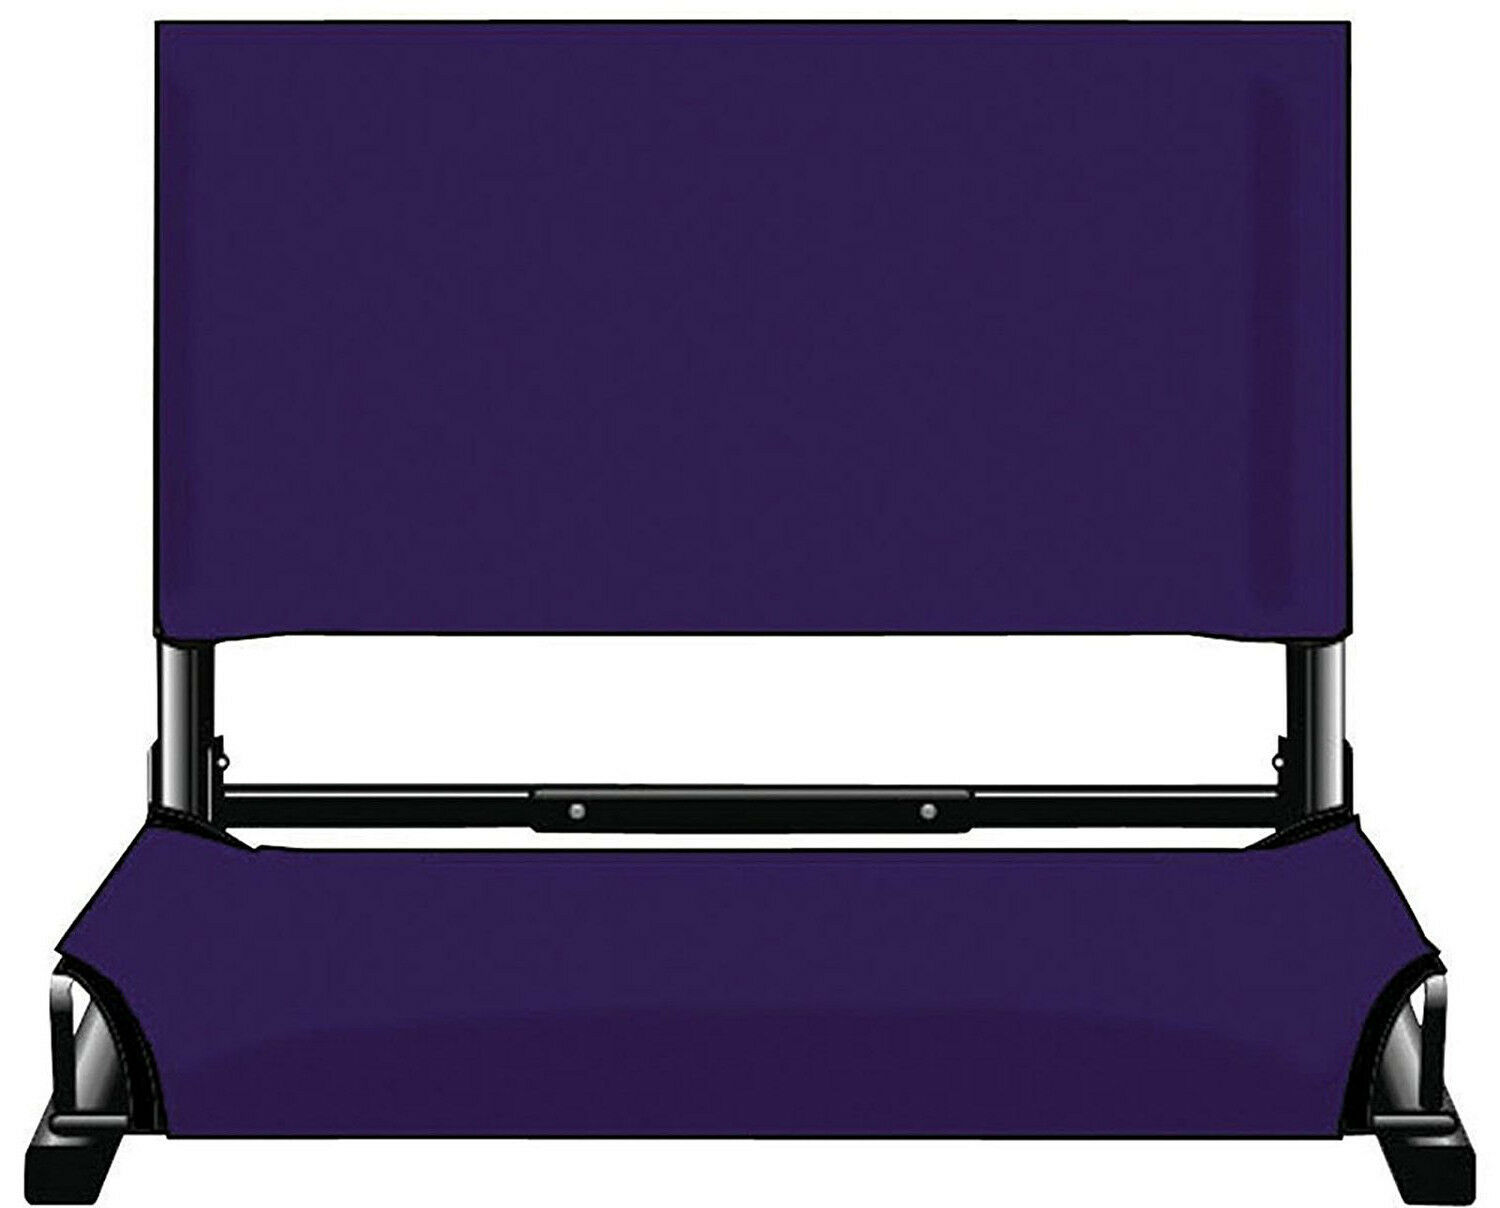 PURPLE WIDE Folding Stadium Chair Bleacher Seat Portable Sturdy Cushion